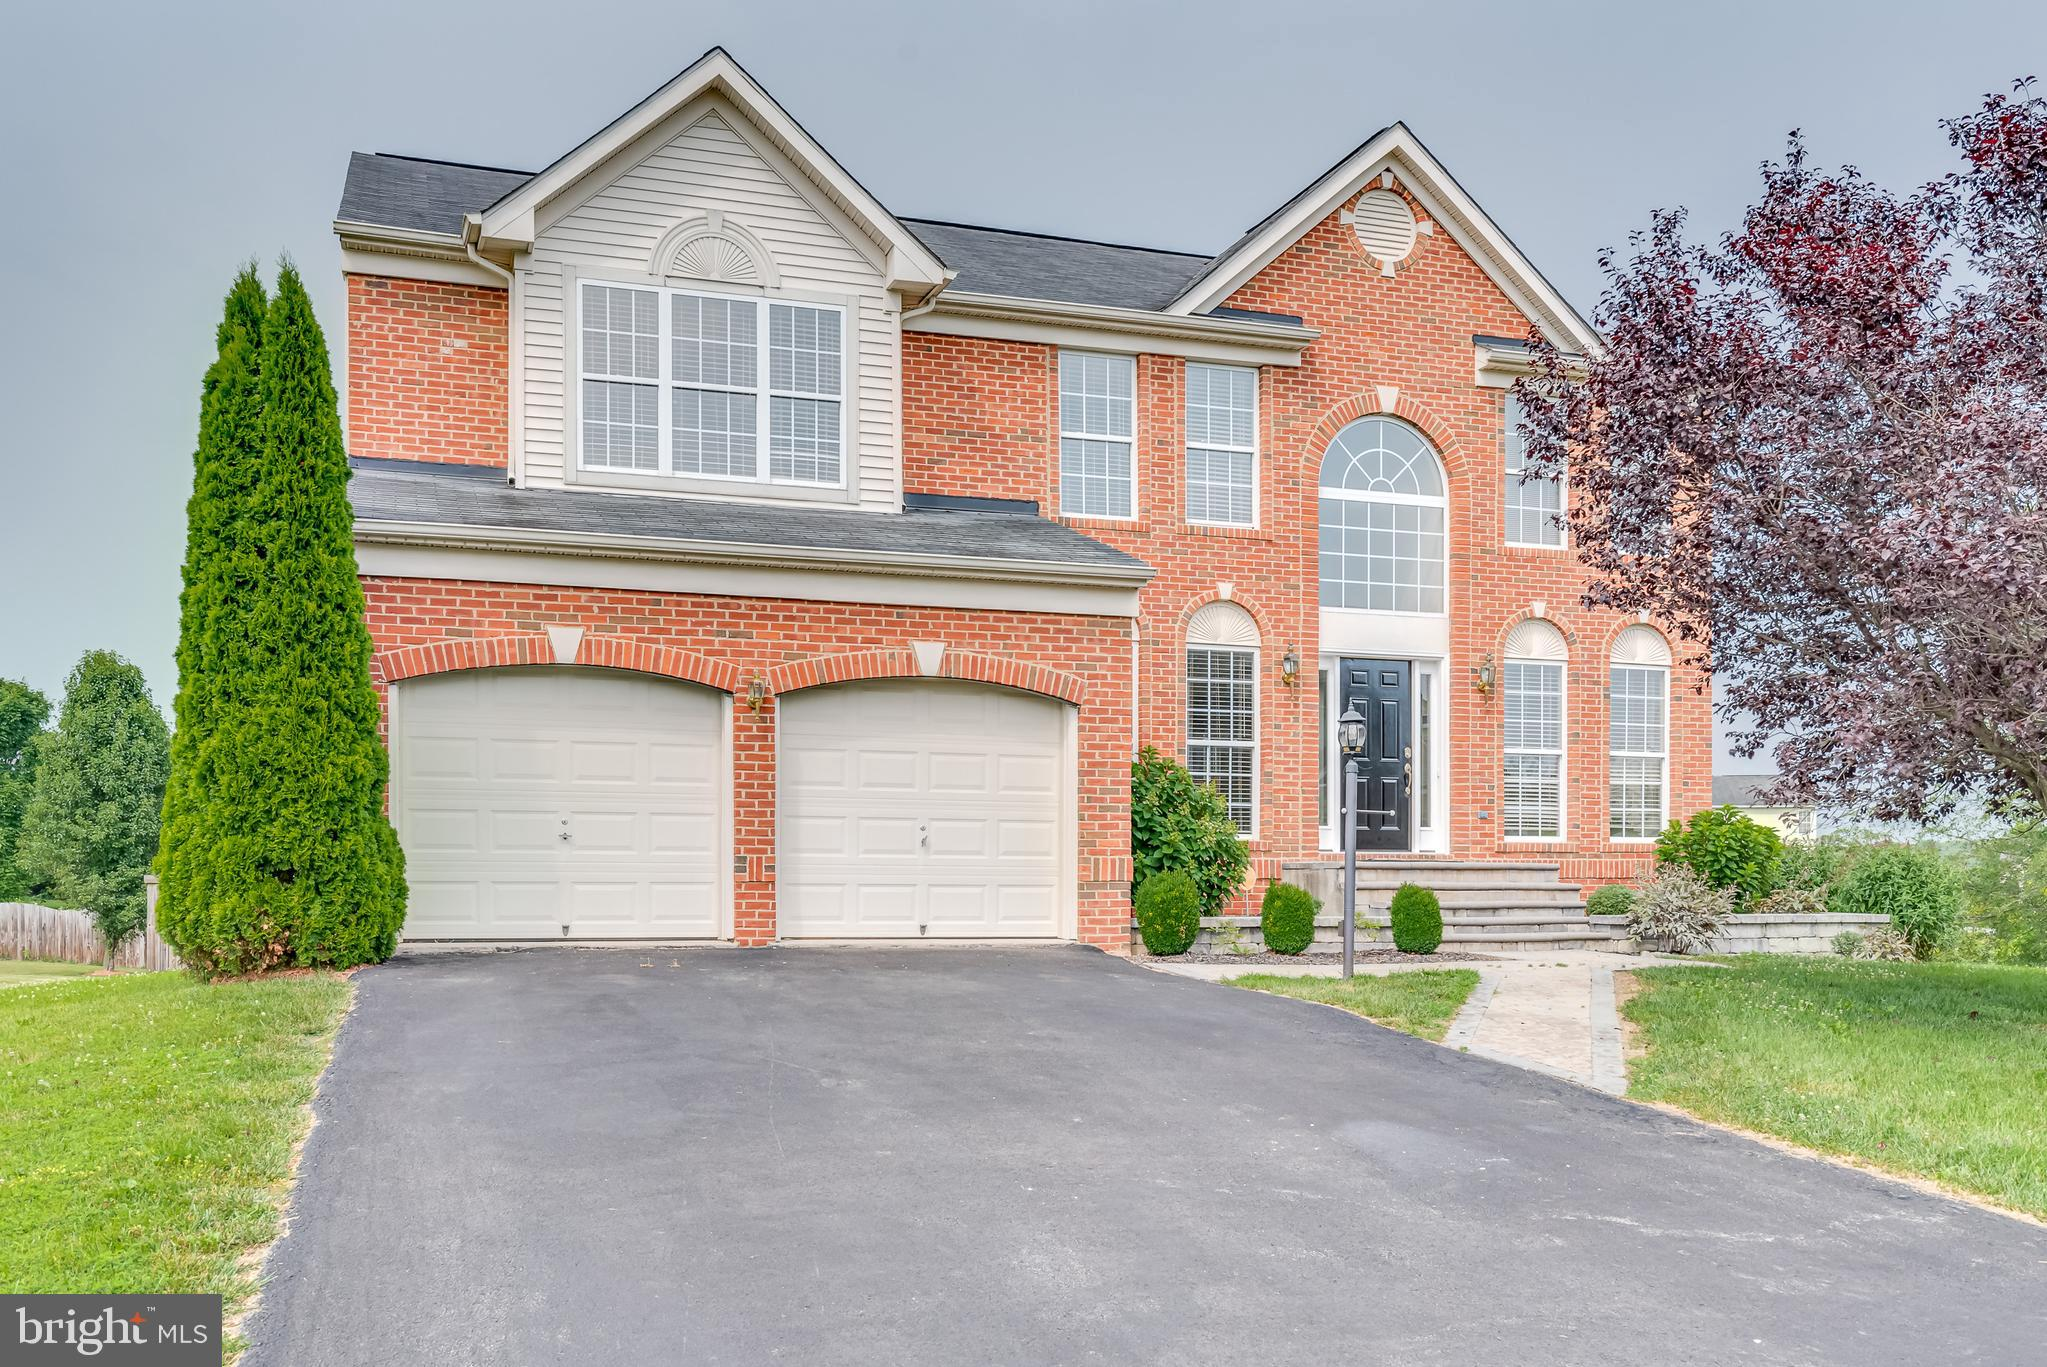 This 4 bedroom, 3 1/2 bath Colonial features tons of storage with walk in closets, a HUGE master bed